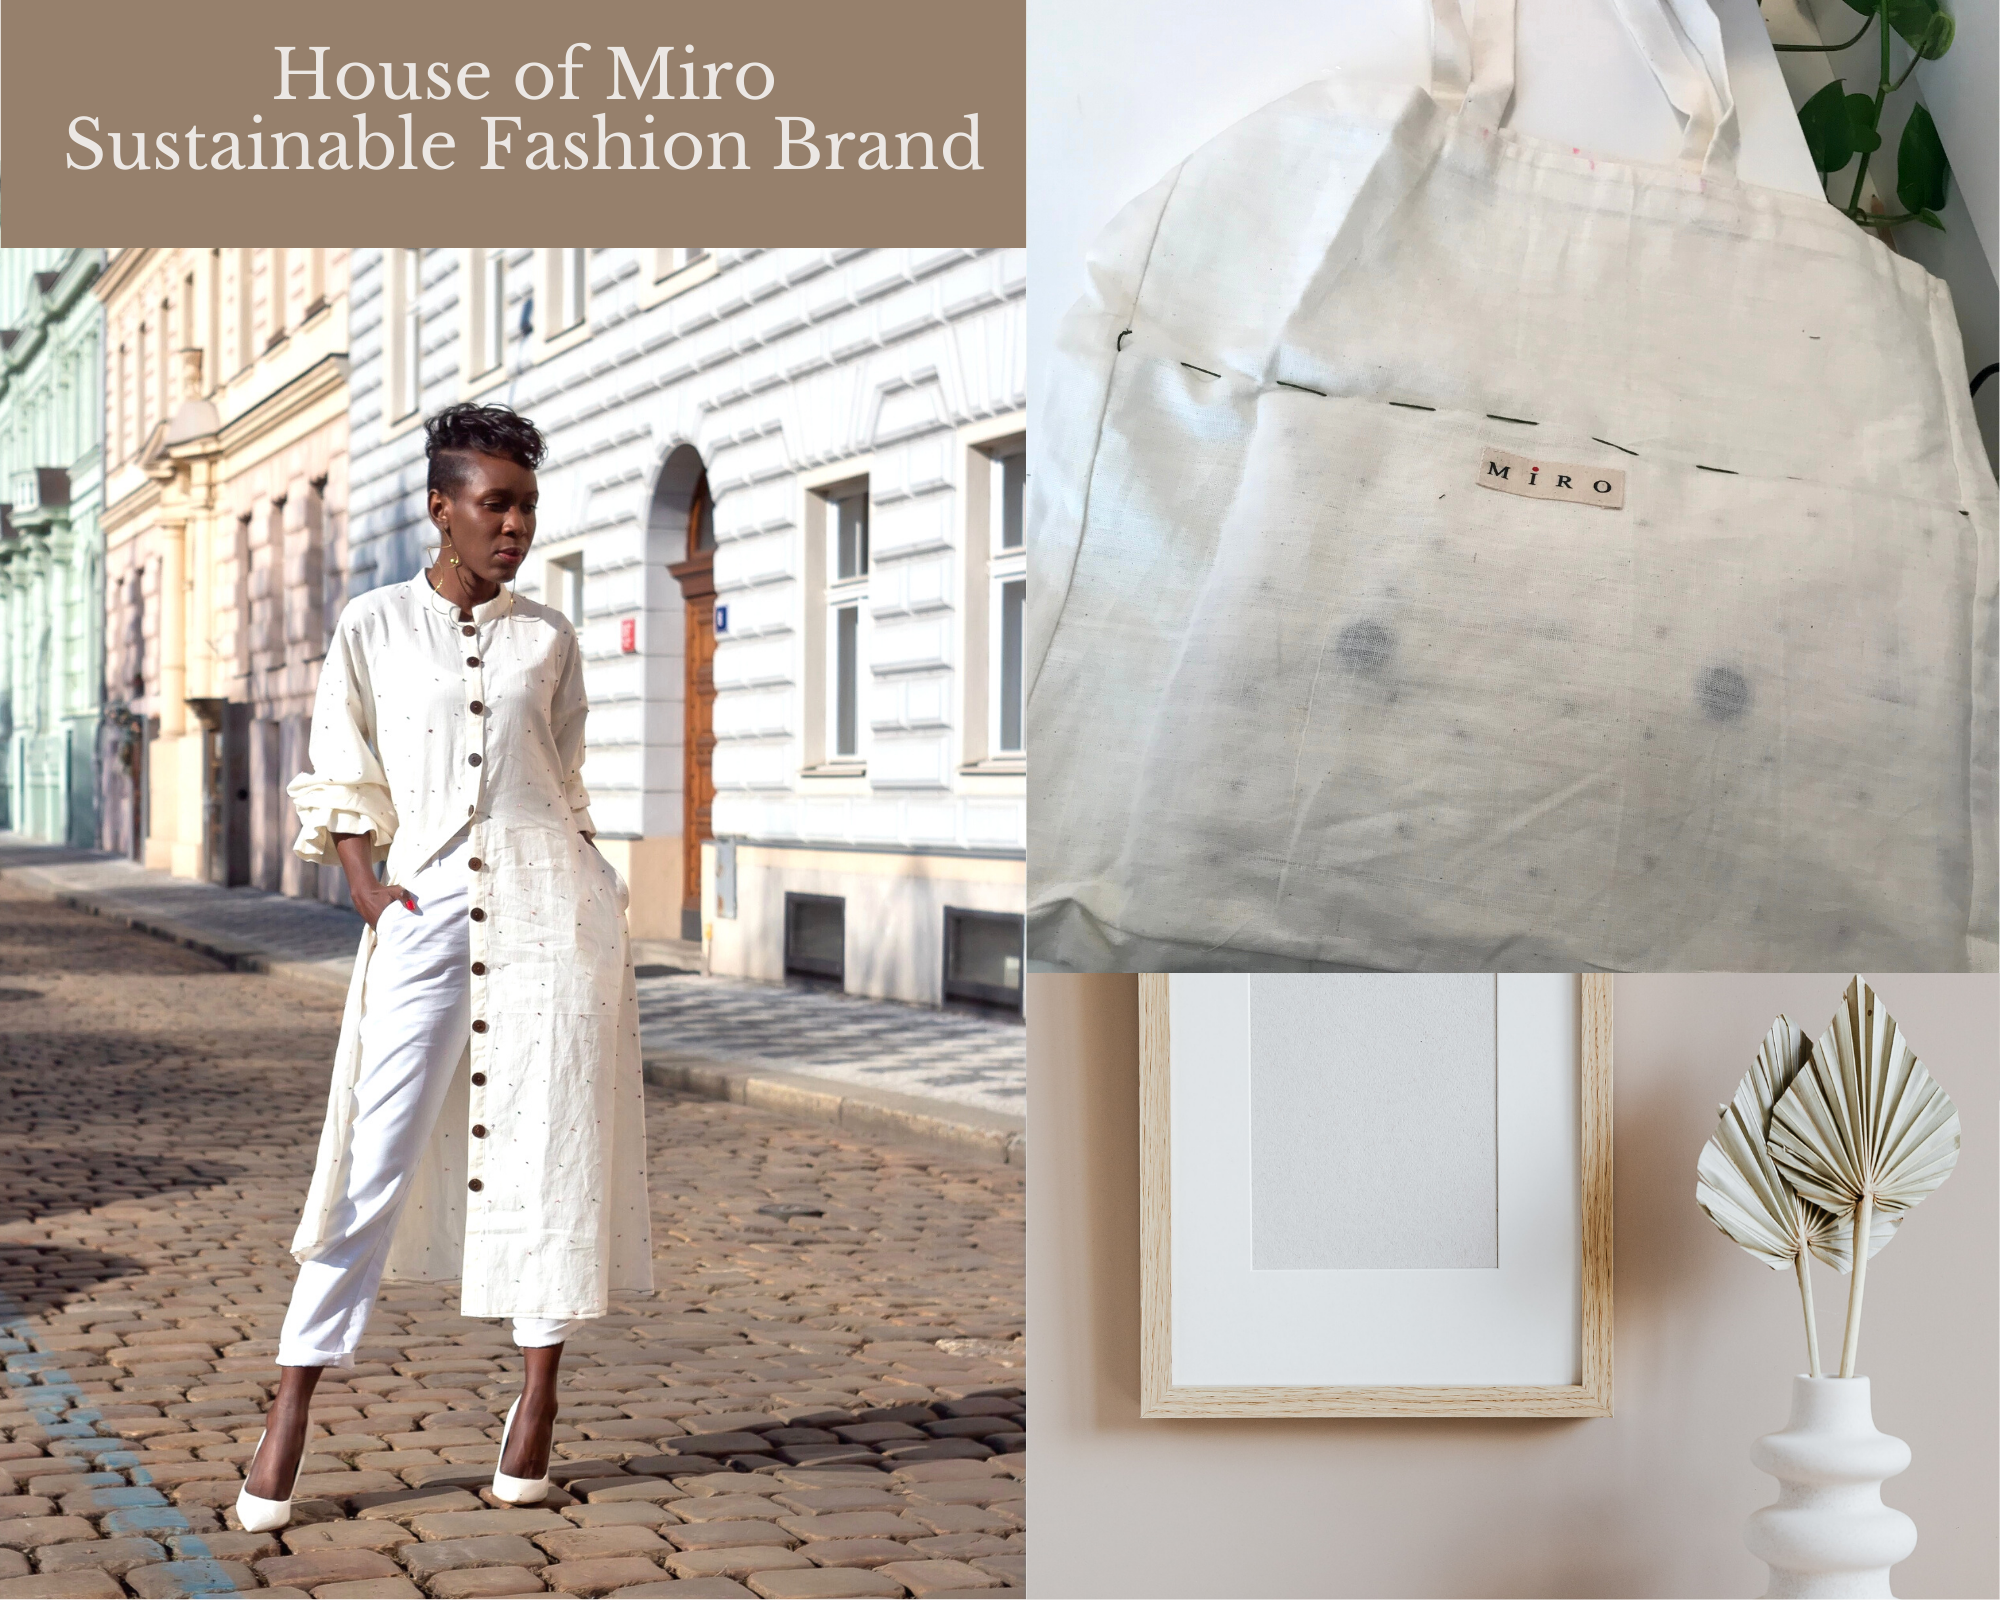 House of Miro. A Sustainable Fashion Brand